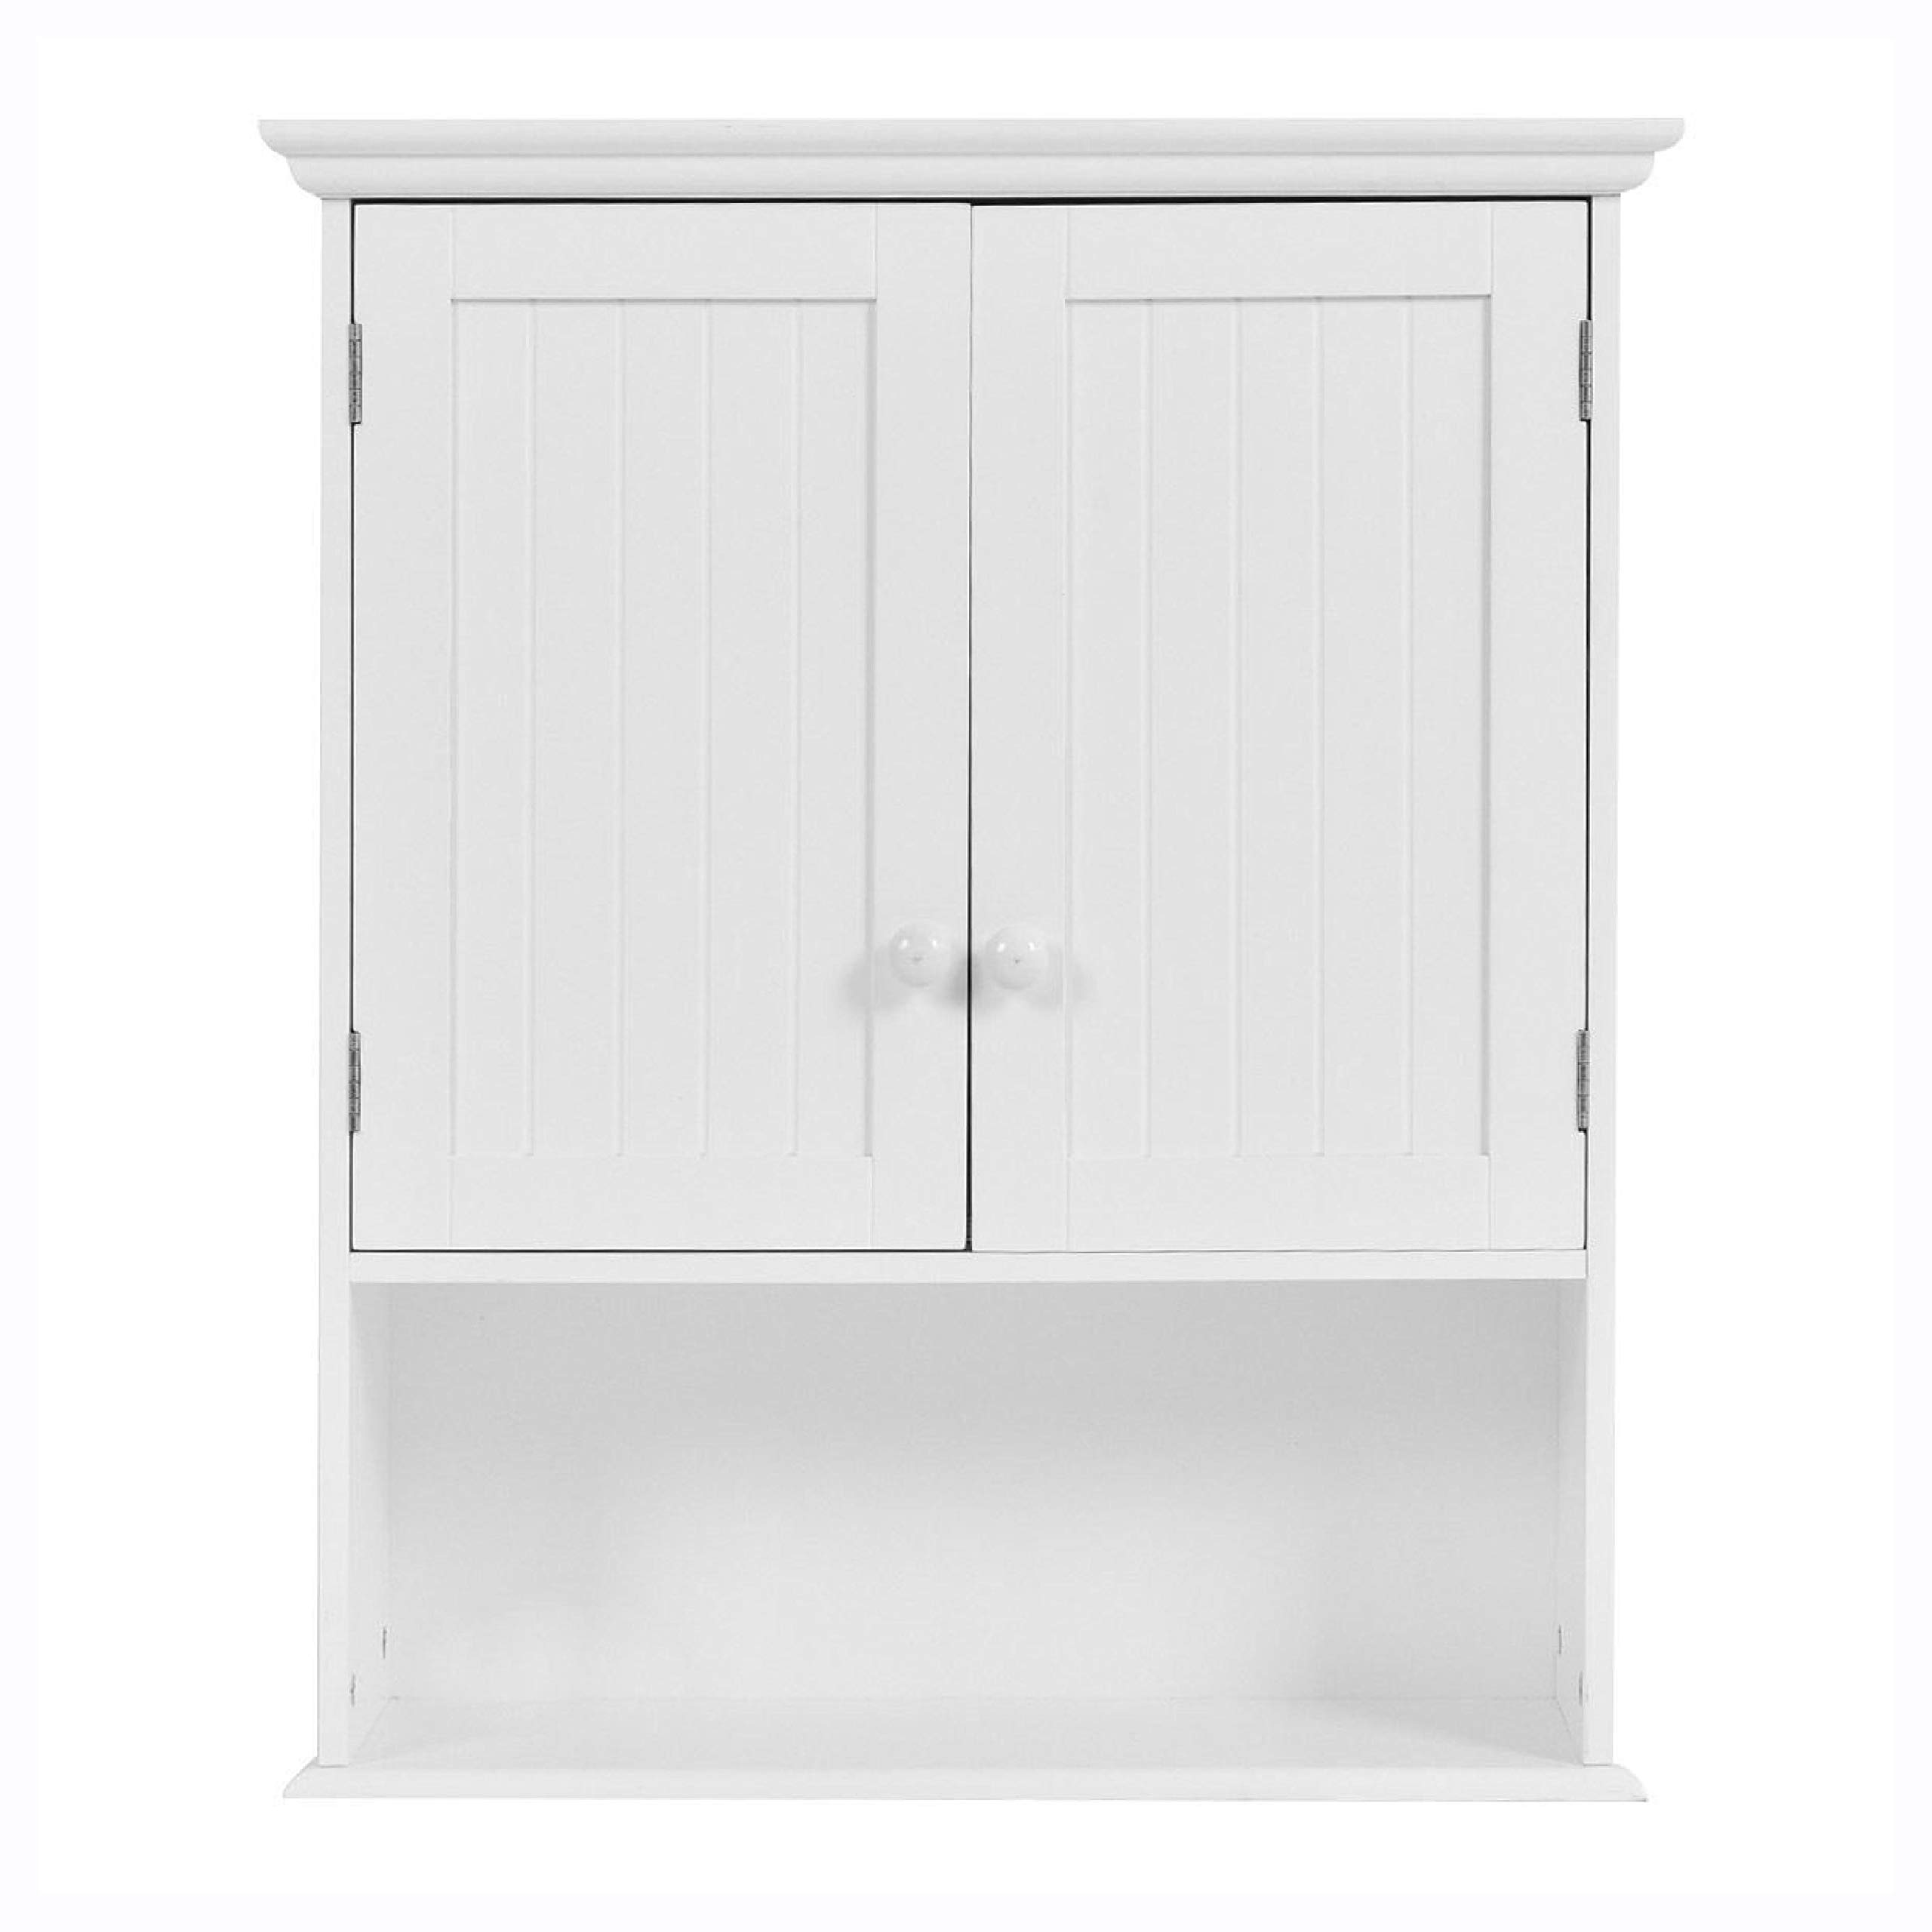 Bathroom Cabinet, White Wall Mount Bathroom Cabinet with Storage Shelf by HEATAPPLY